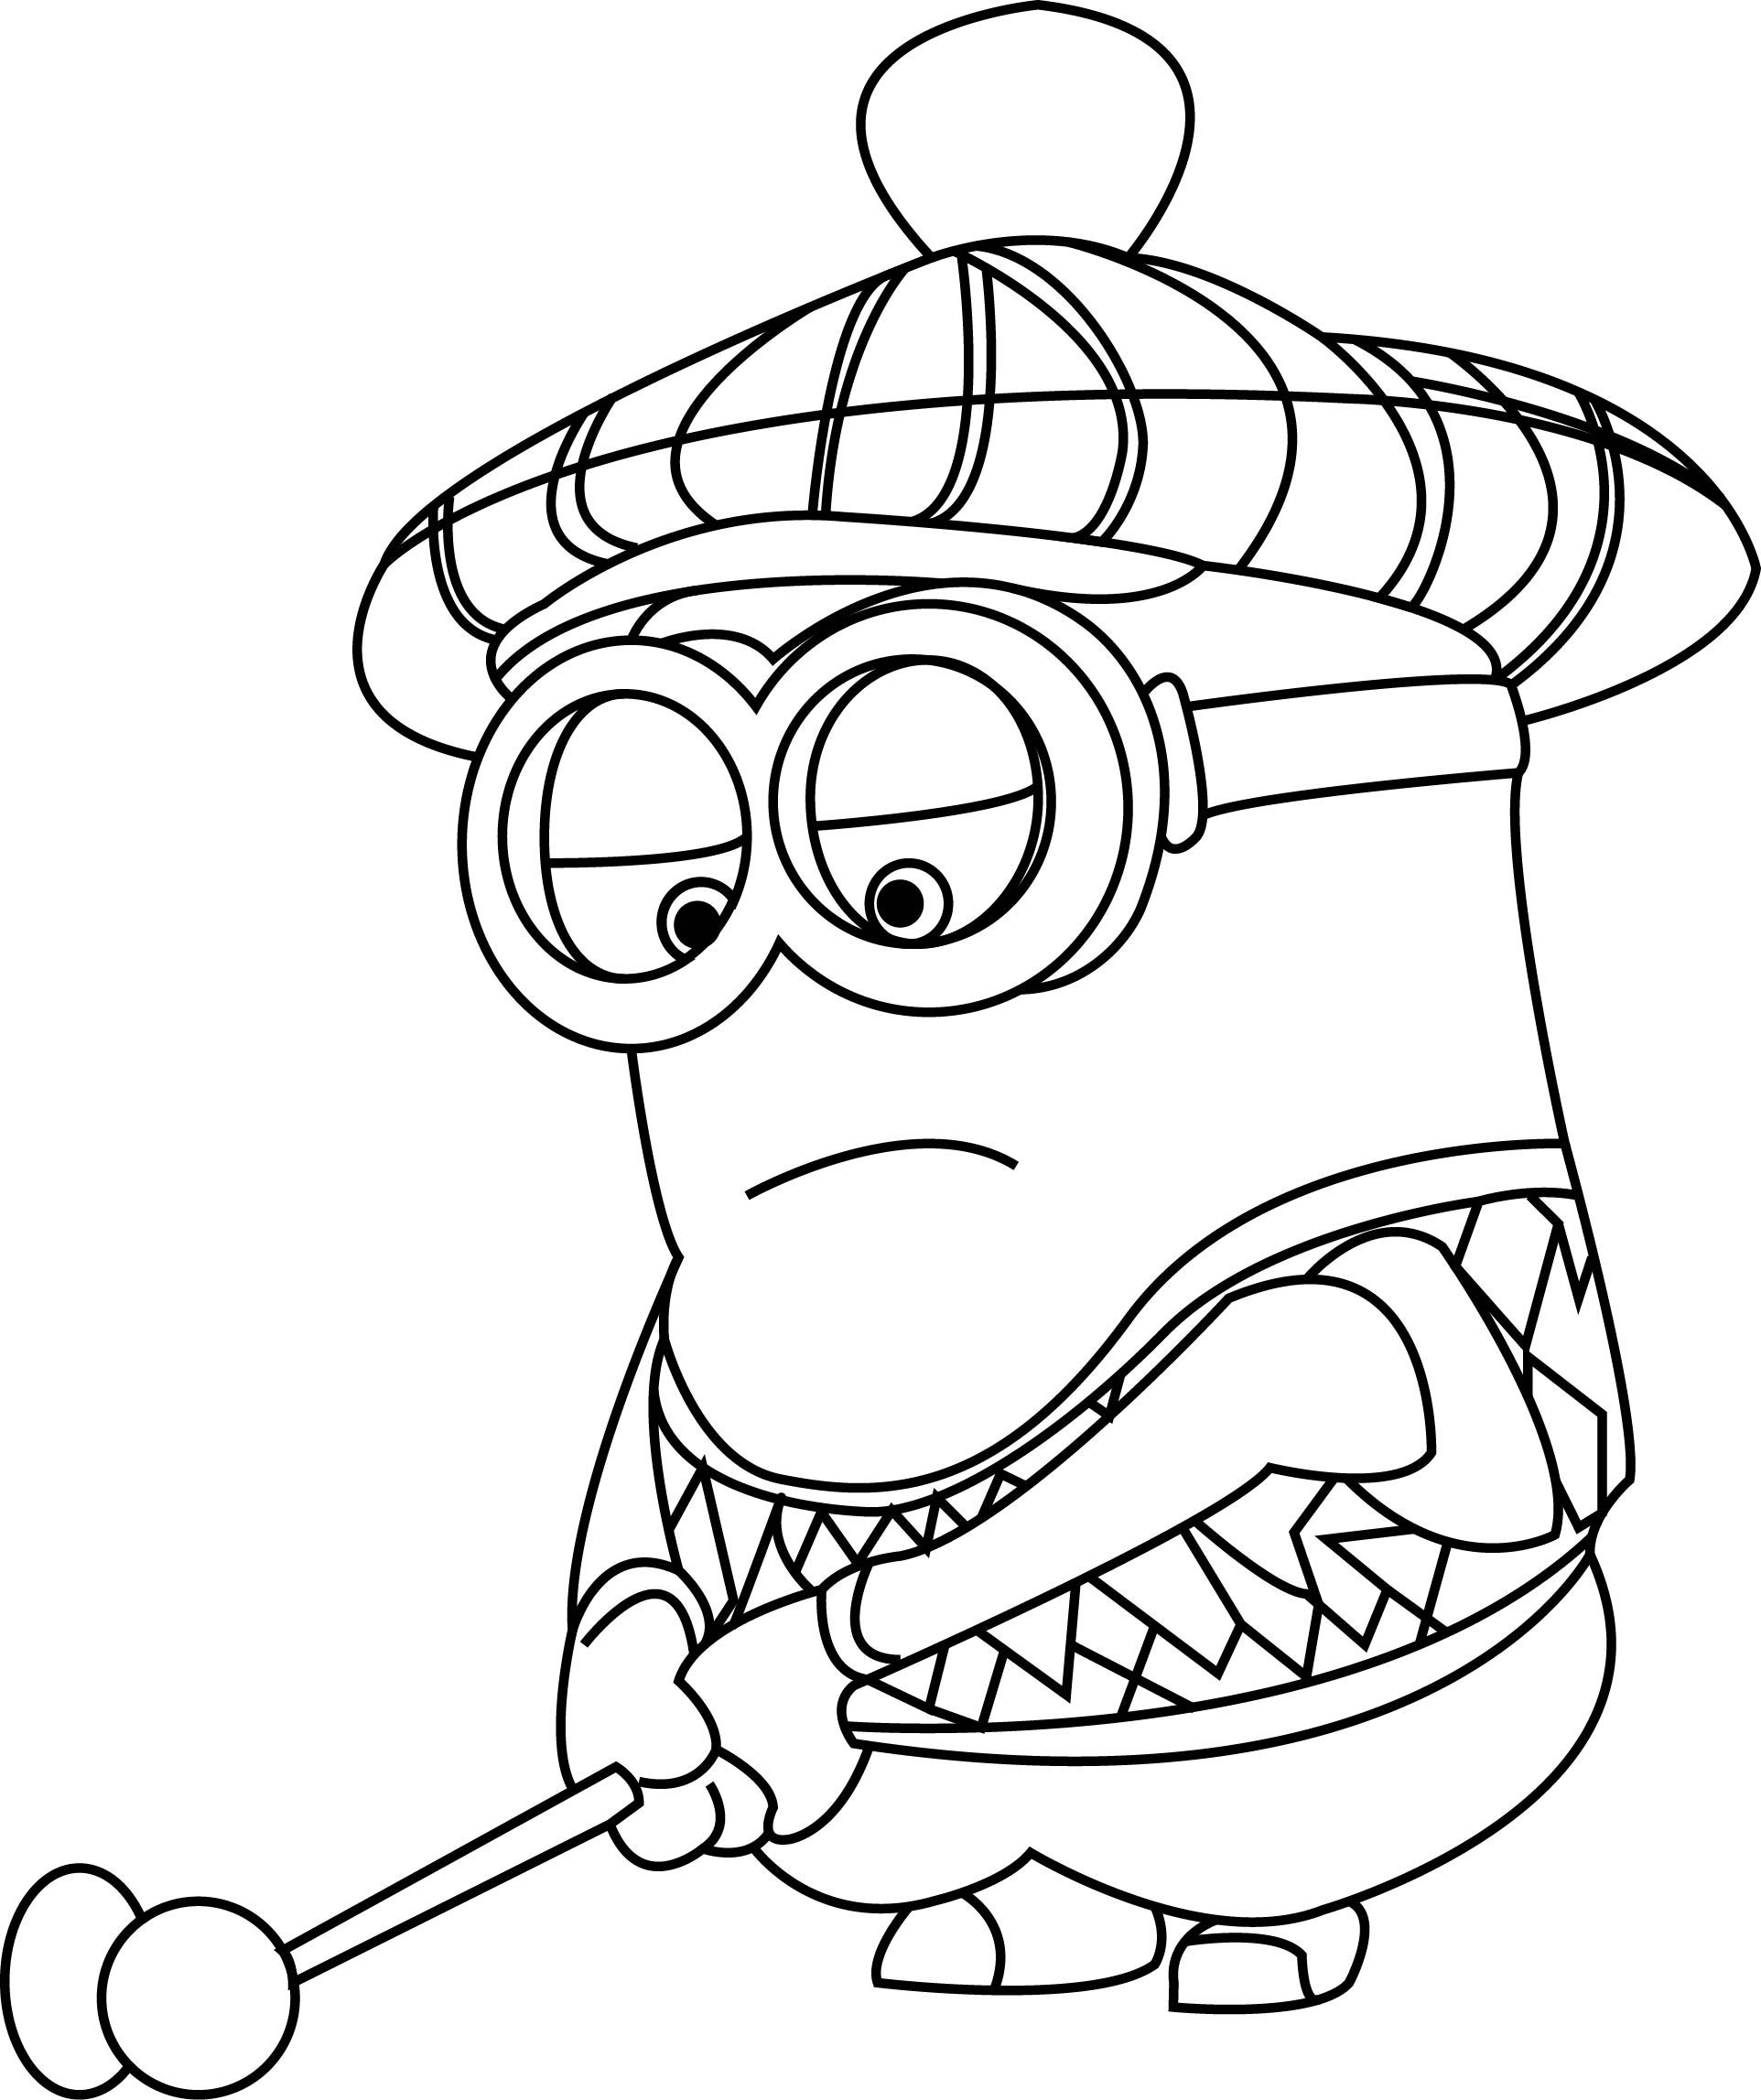 1924x2295 Inspiring With Dracula Printable Coloring Page For Minion To Print